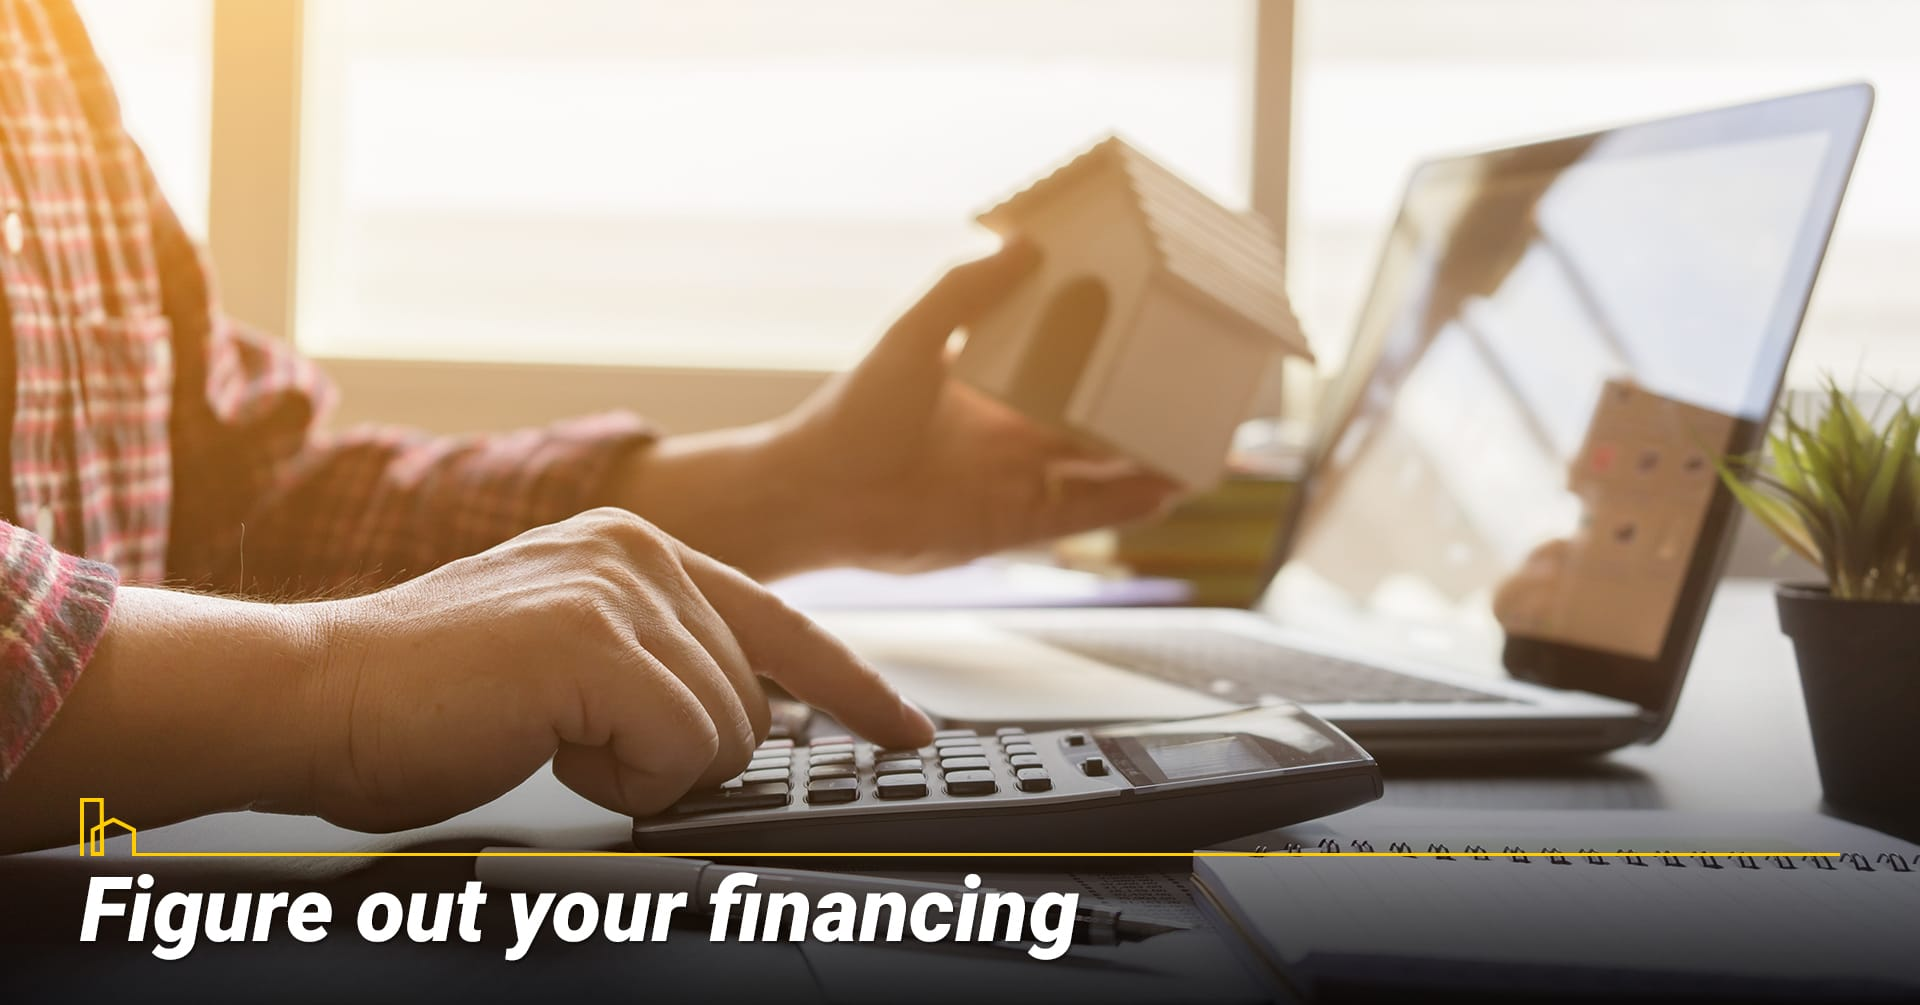 Figure out your financing, finance your home